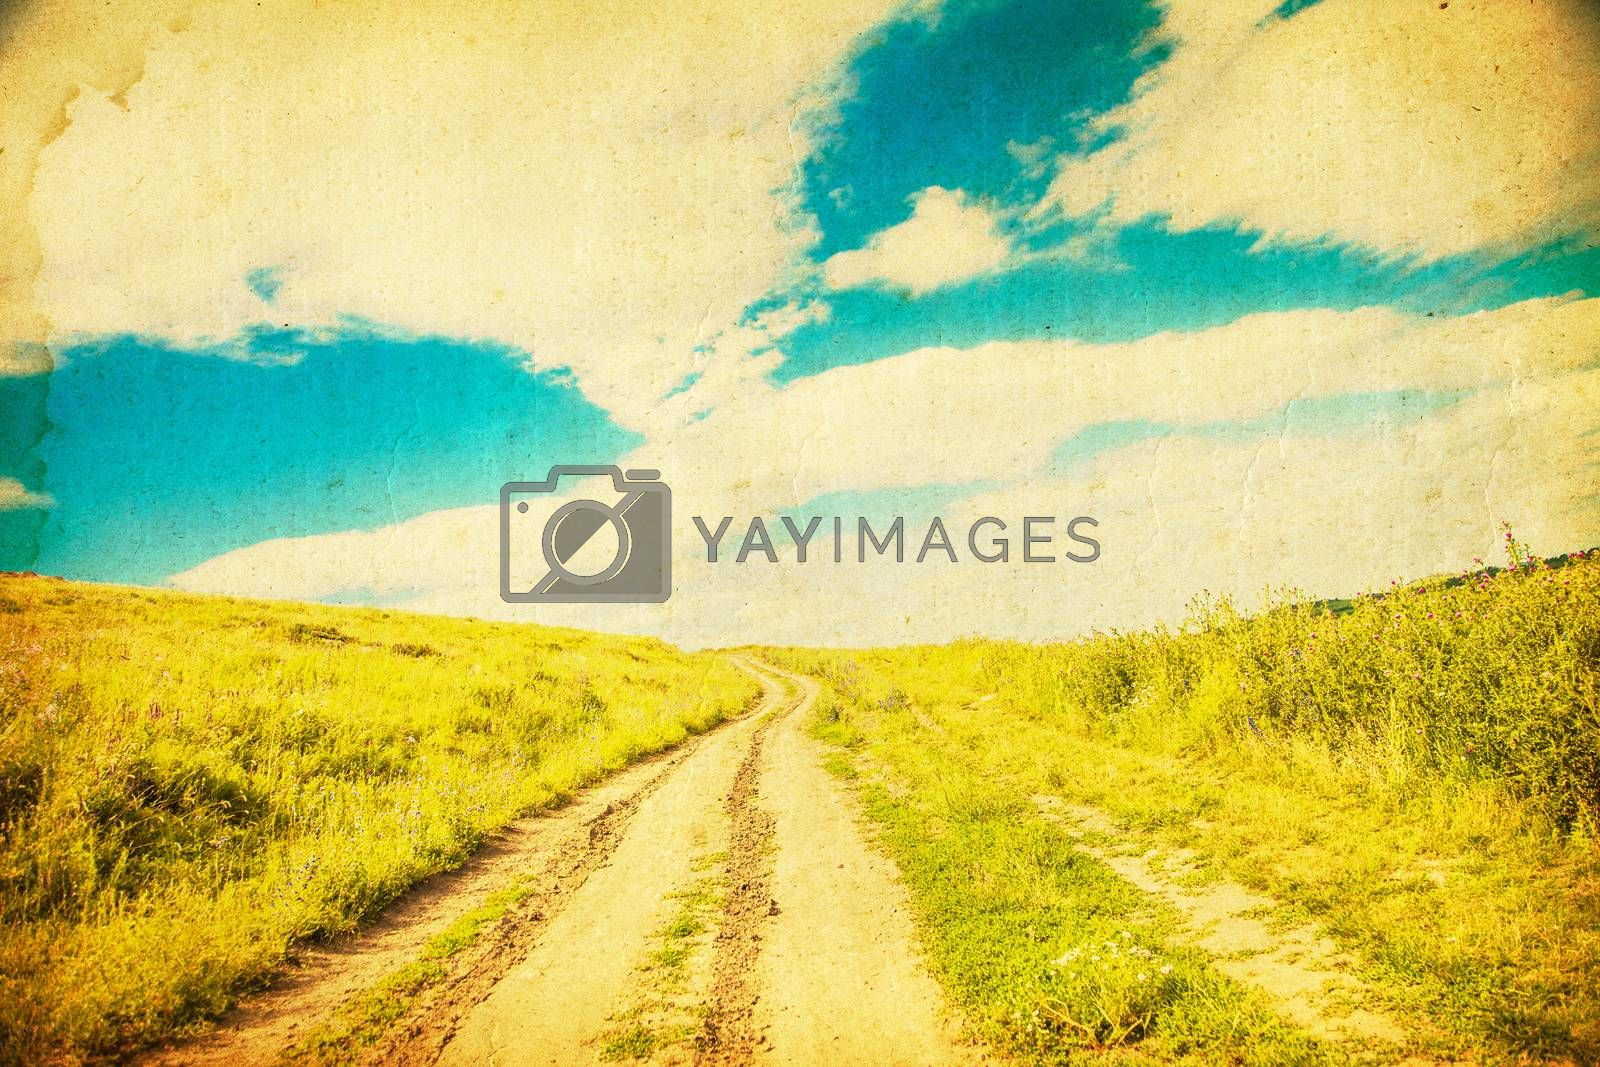 The road through the field at sunset.Grunge and retro style.